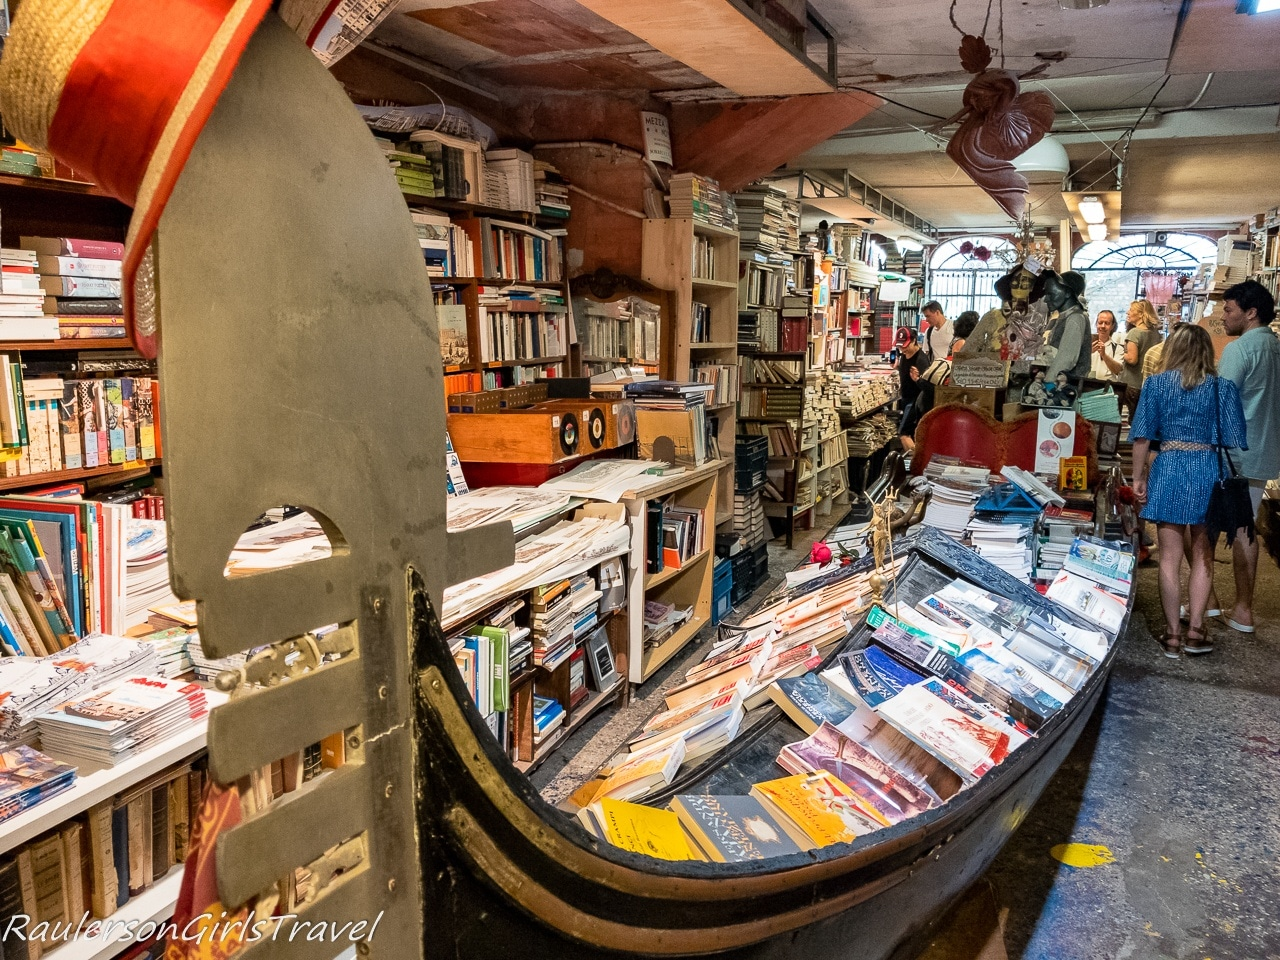 Libreria Acqua Alta in Venice - Bookstores Around the World